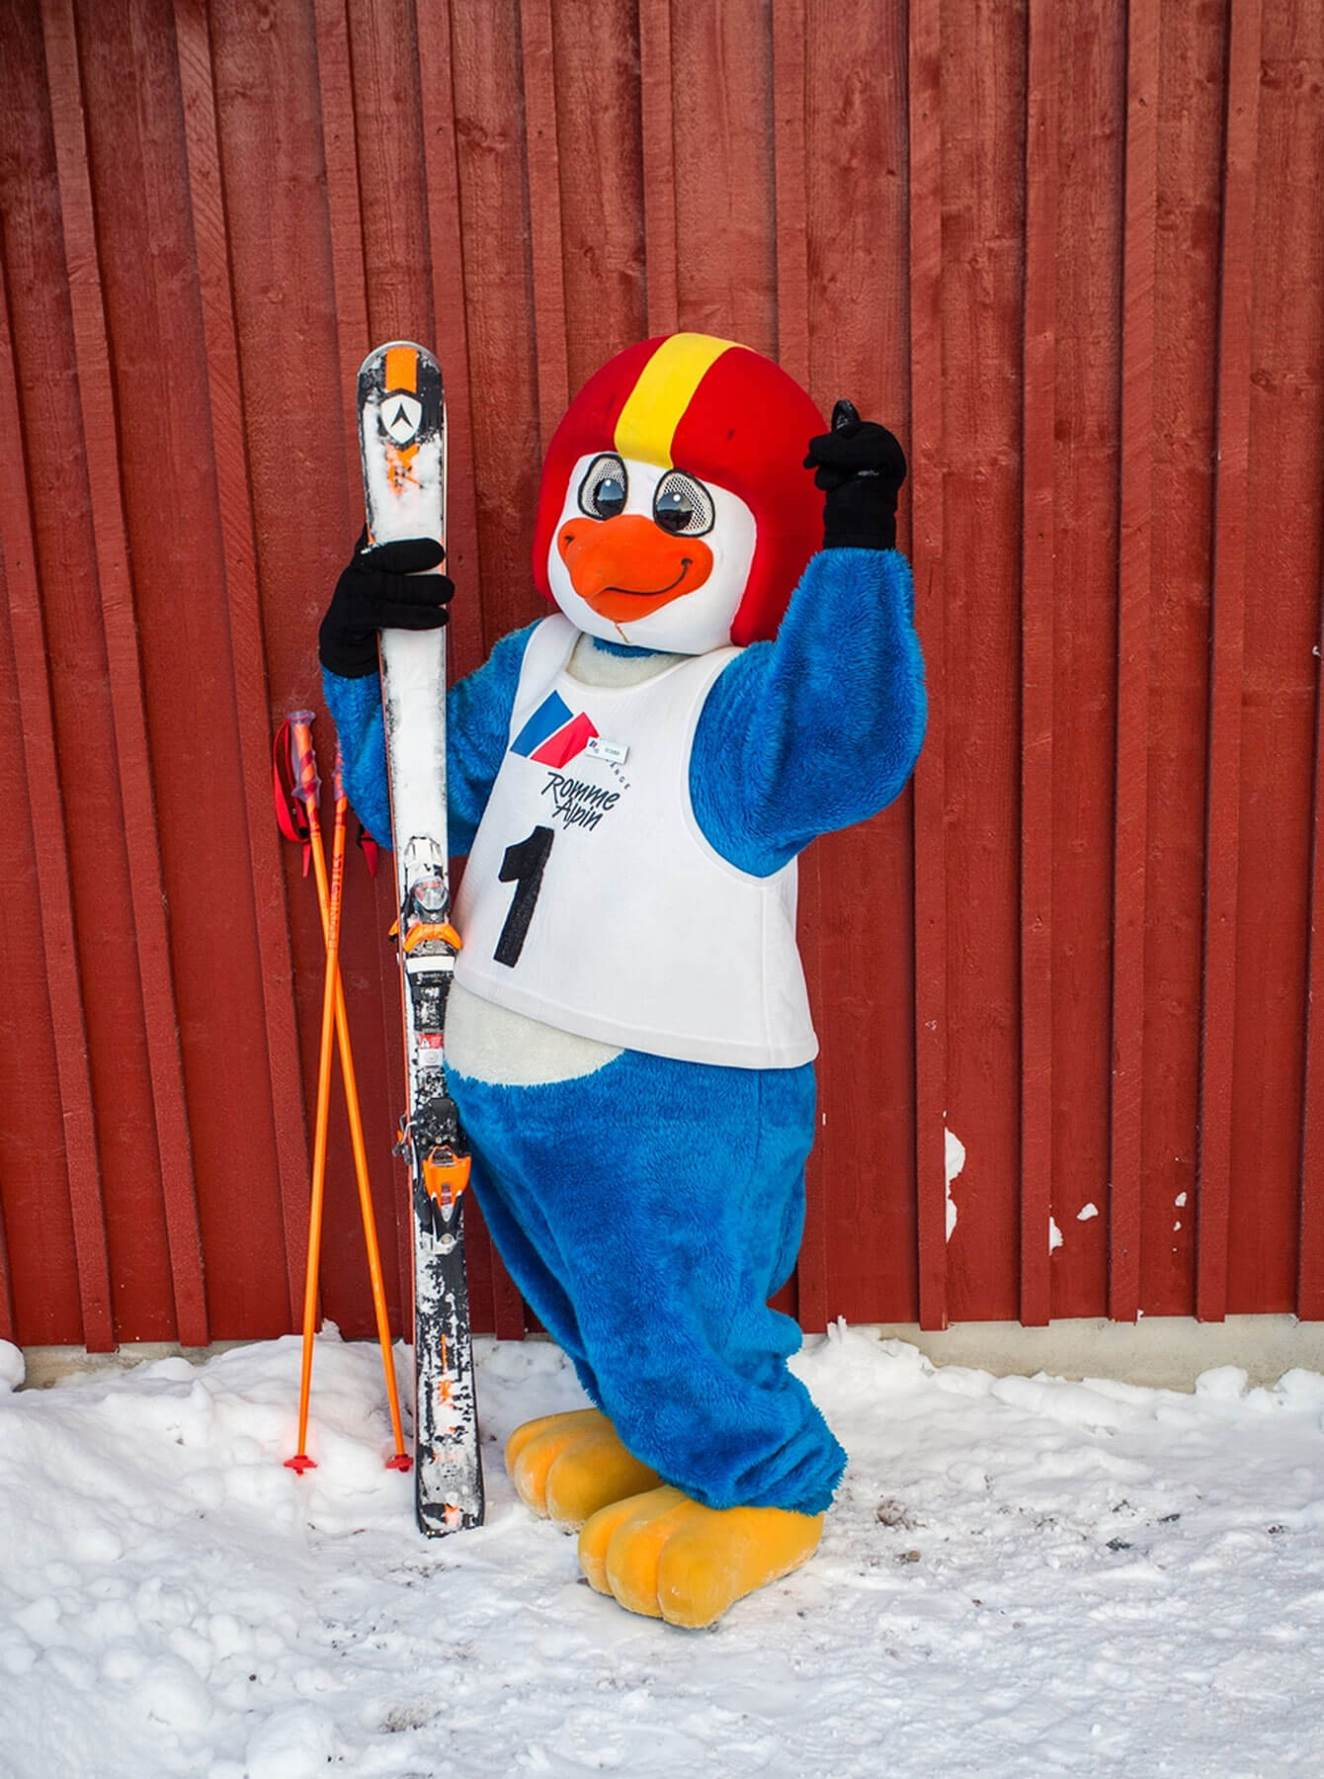 Romme Alpine Mascotte in Sweden